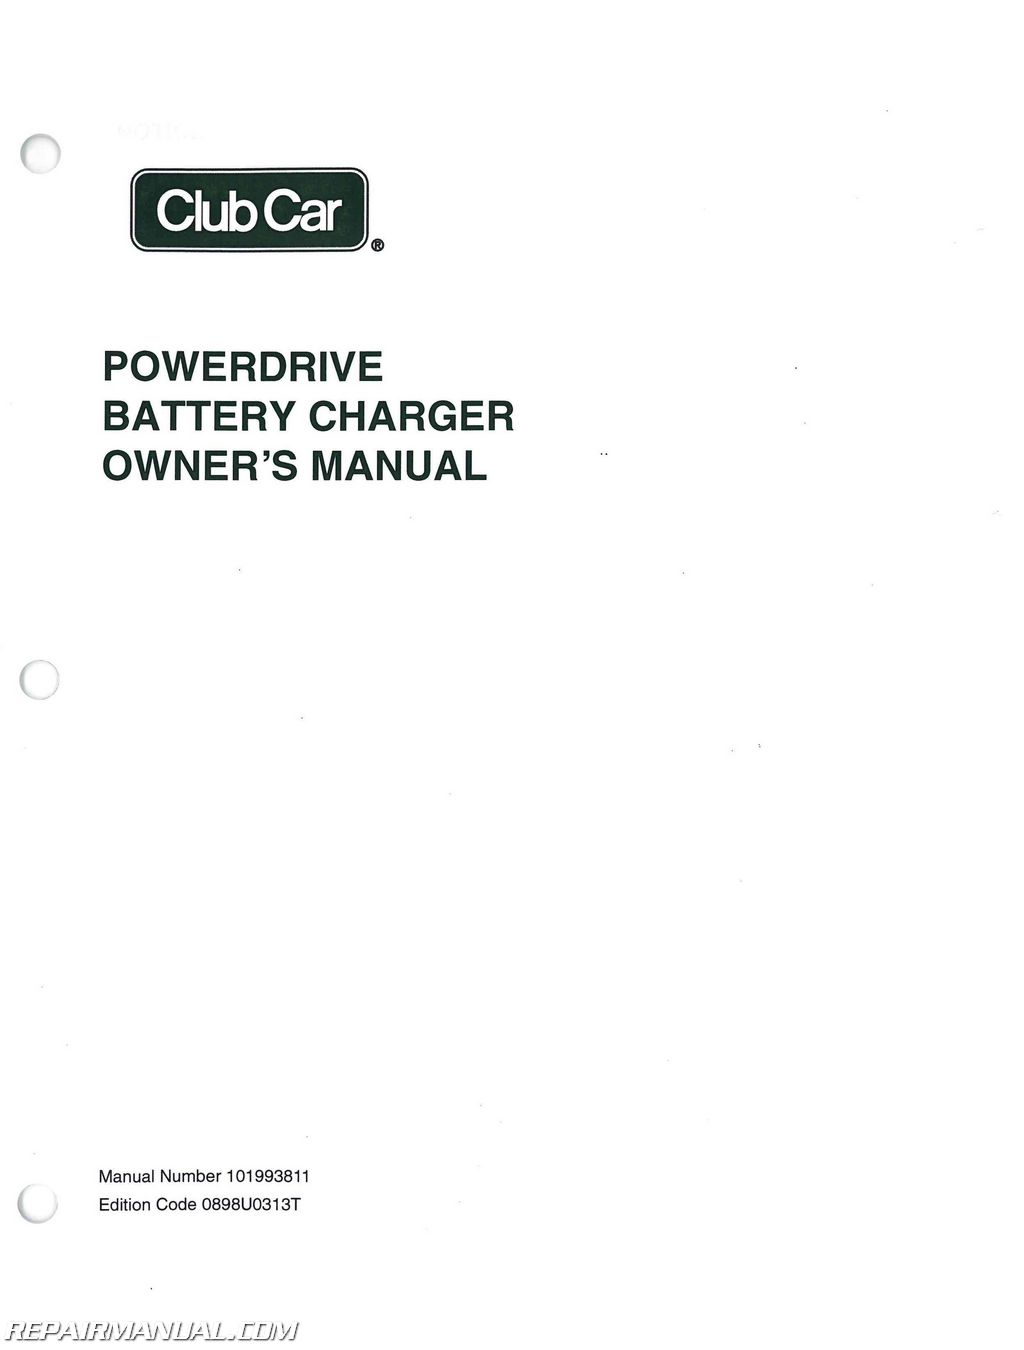 Powerdrive Battery Charger Wiring Diagram Golden Schematic Power Drive Club Car Domestic Export European Owners Manual